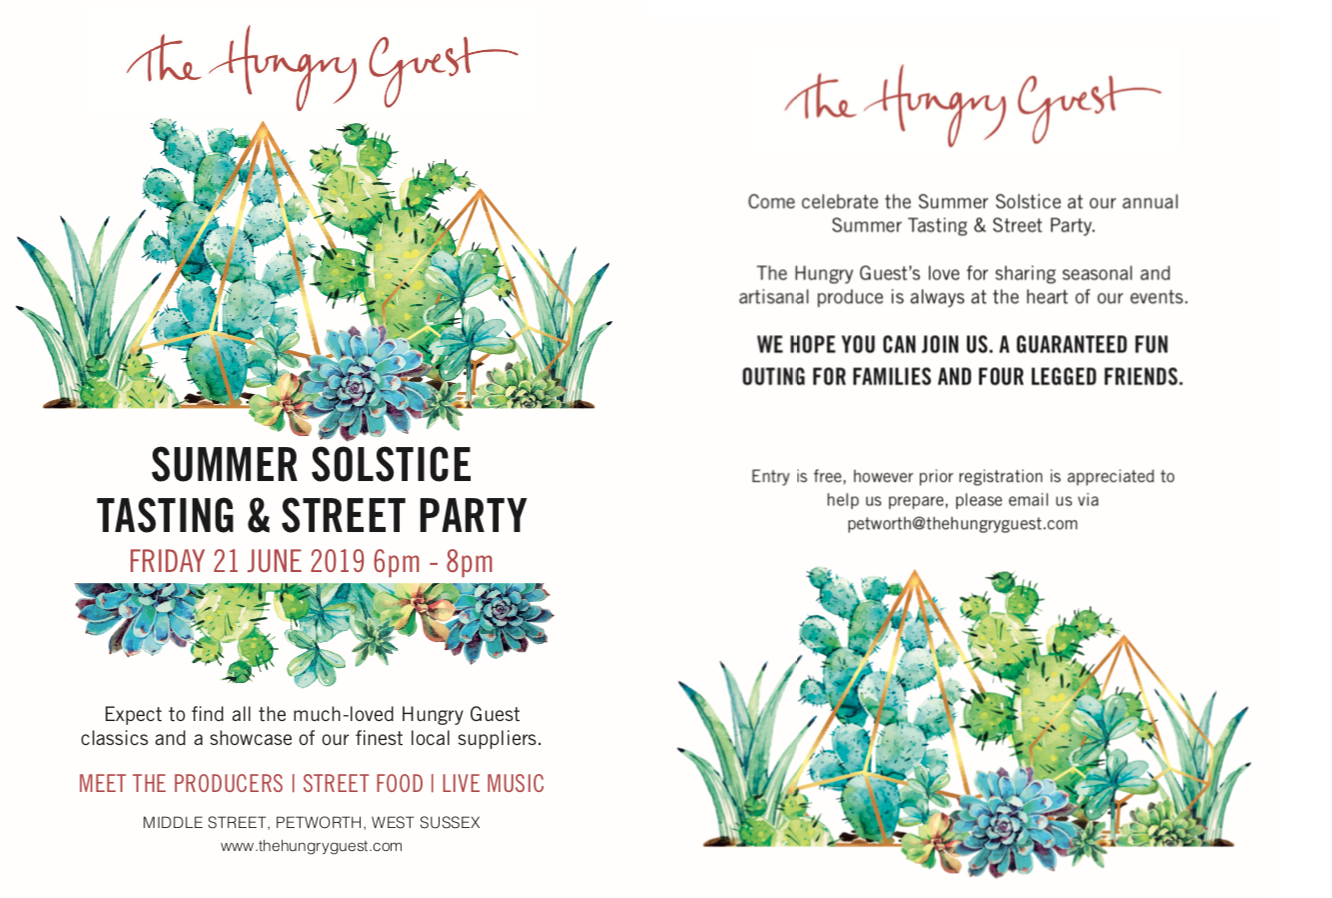 Summer Tasting & Street Party at Hungry Guest